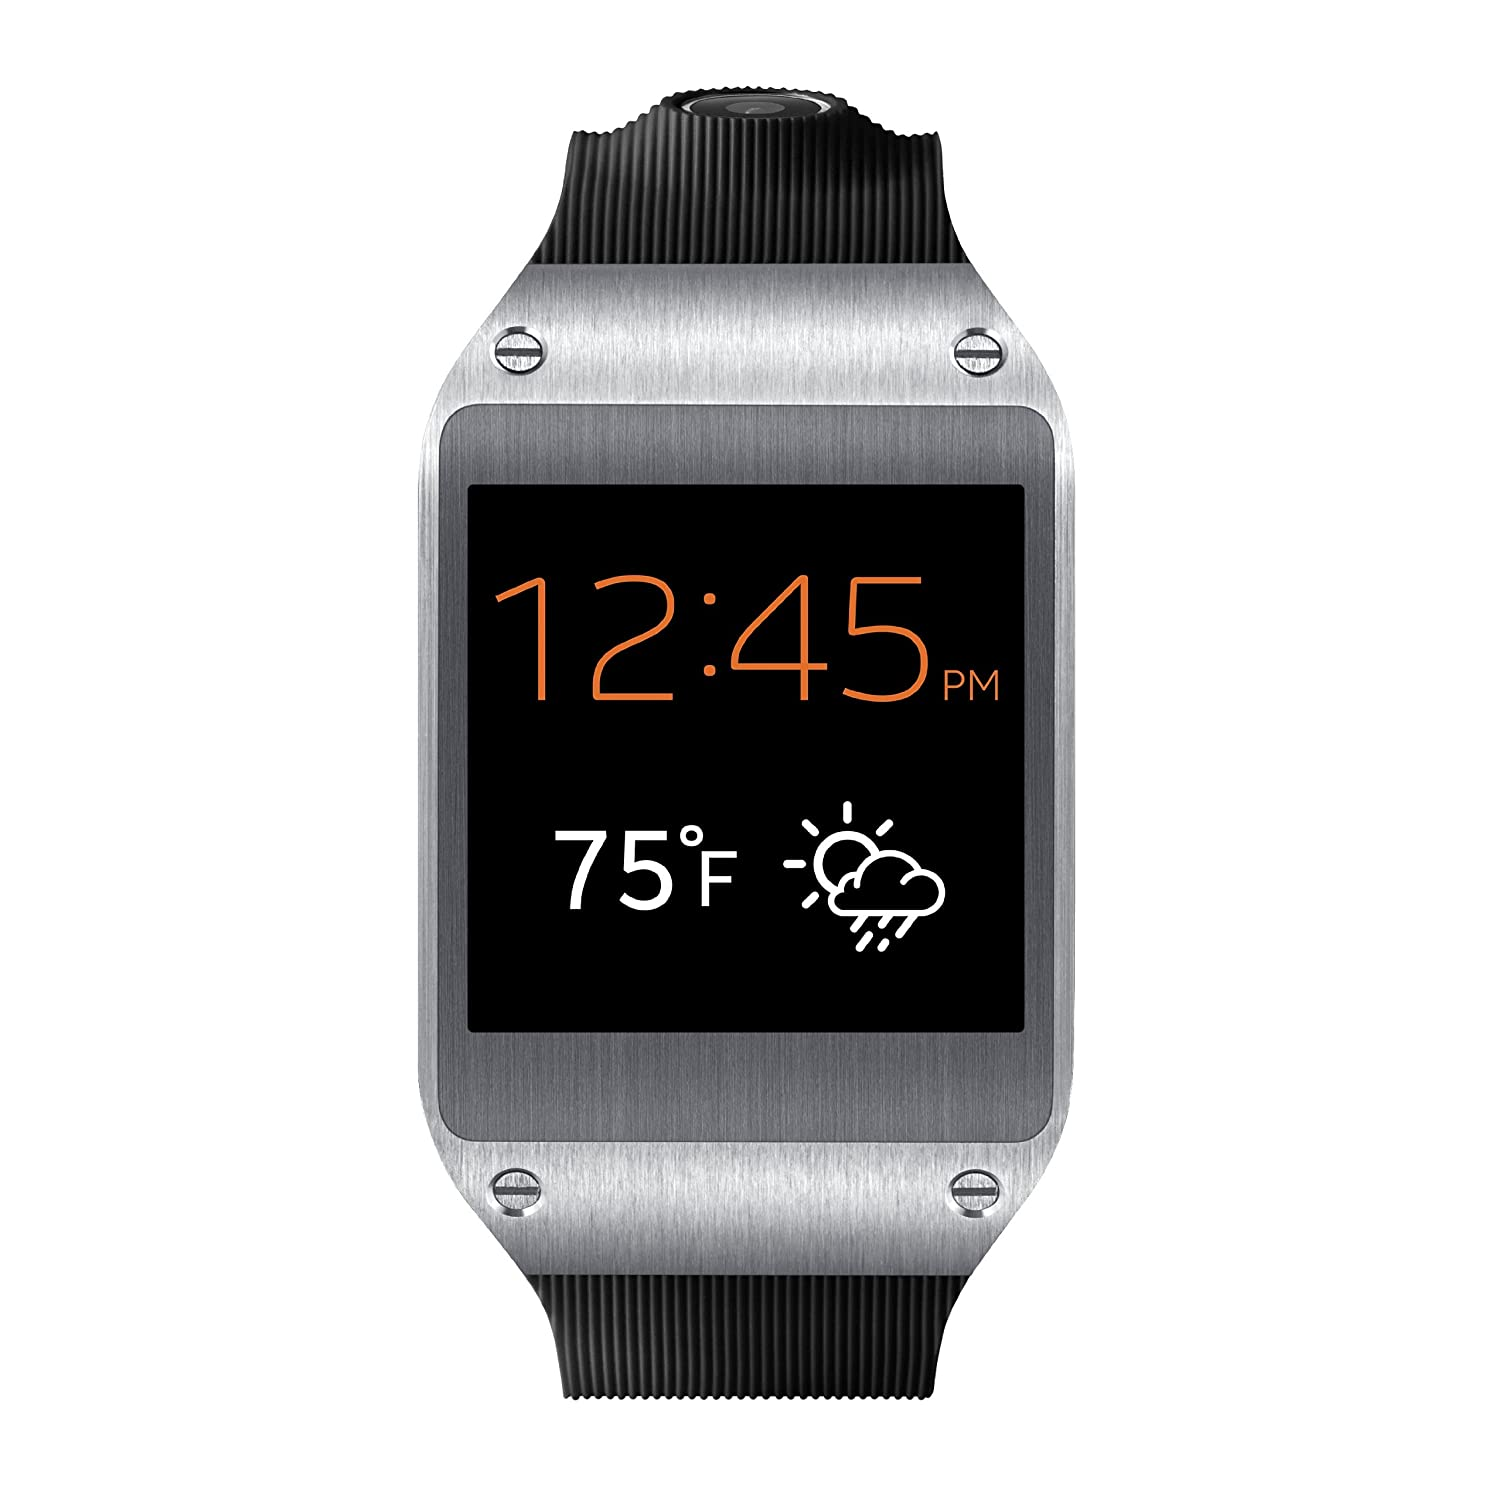 central side watches by android apple s watch gear samsung vs versus